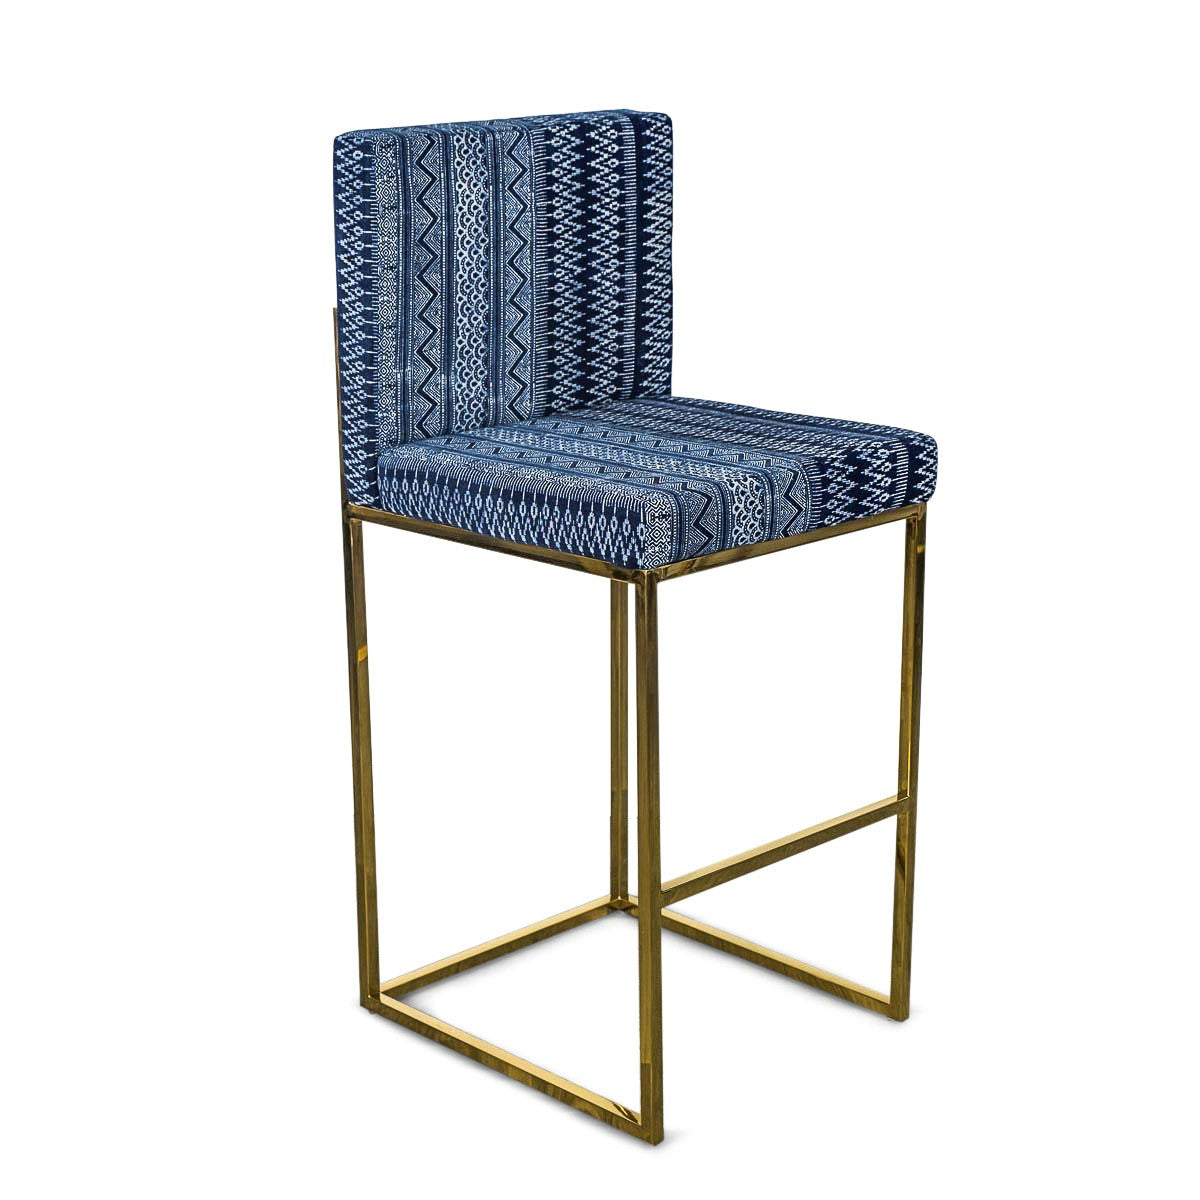 007 Bar Stool in Hand Printed Indigo Mud Cloth - ModShop1.com